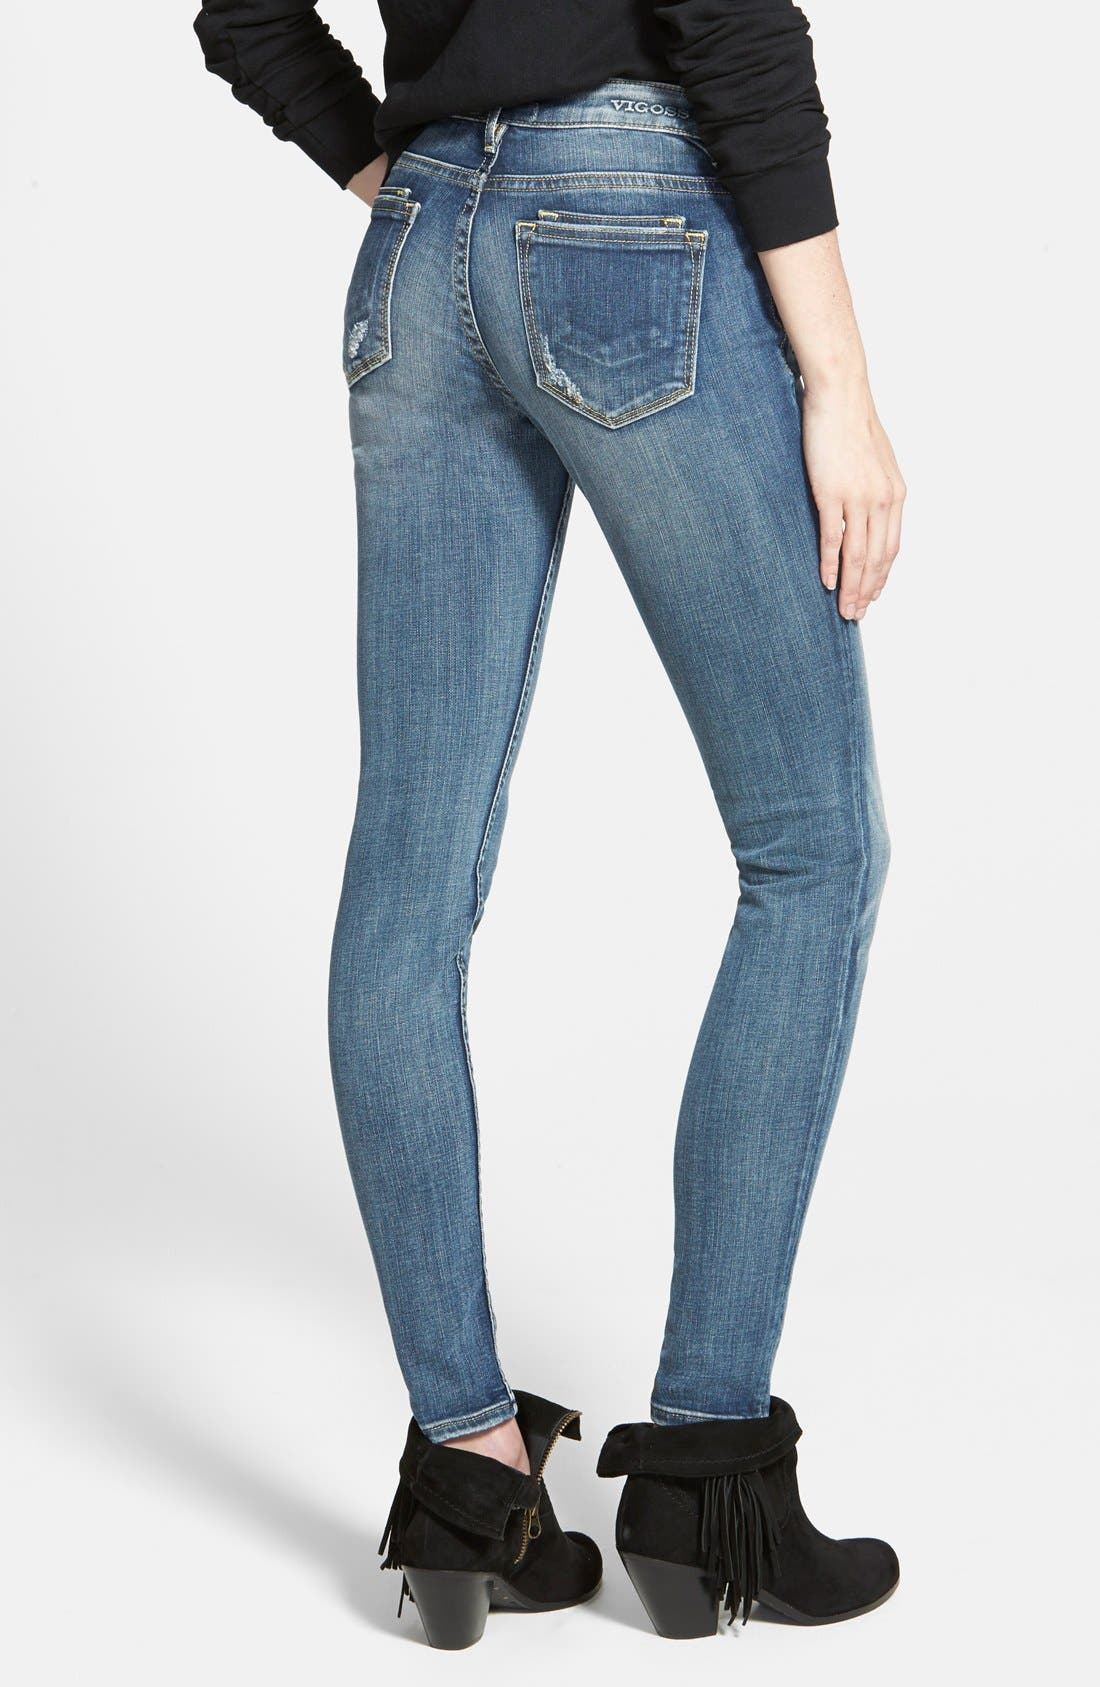 'Dublin' Distressed Skinny Jeans,                             Alternate thumbnail 4, color,                             400